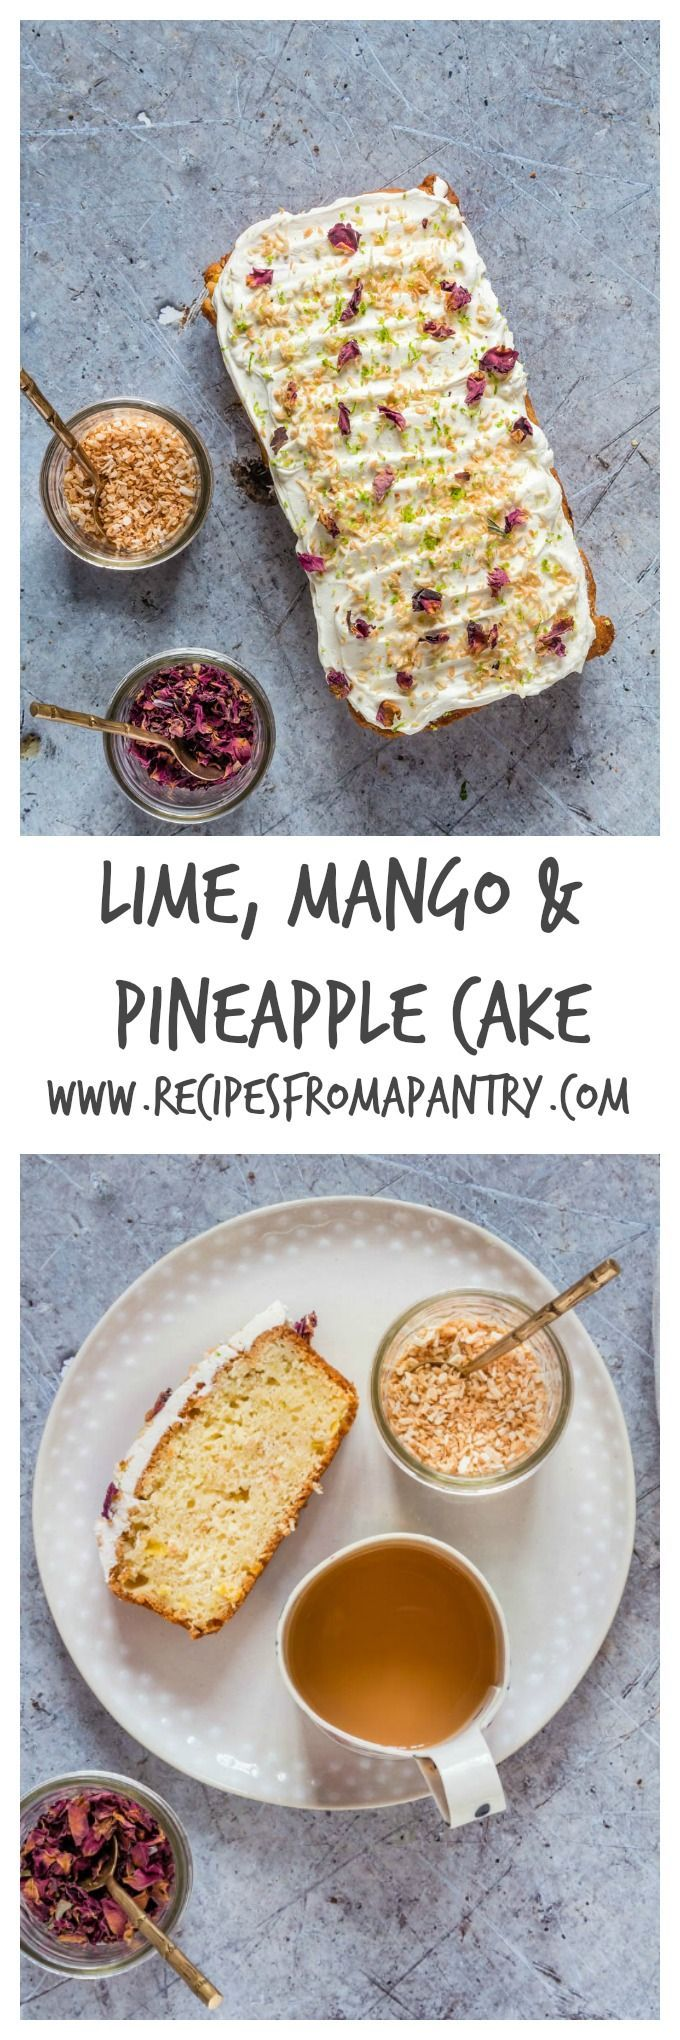 Lime, Mango and Pineapple Loaf Cake   Recipes From A Pantry